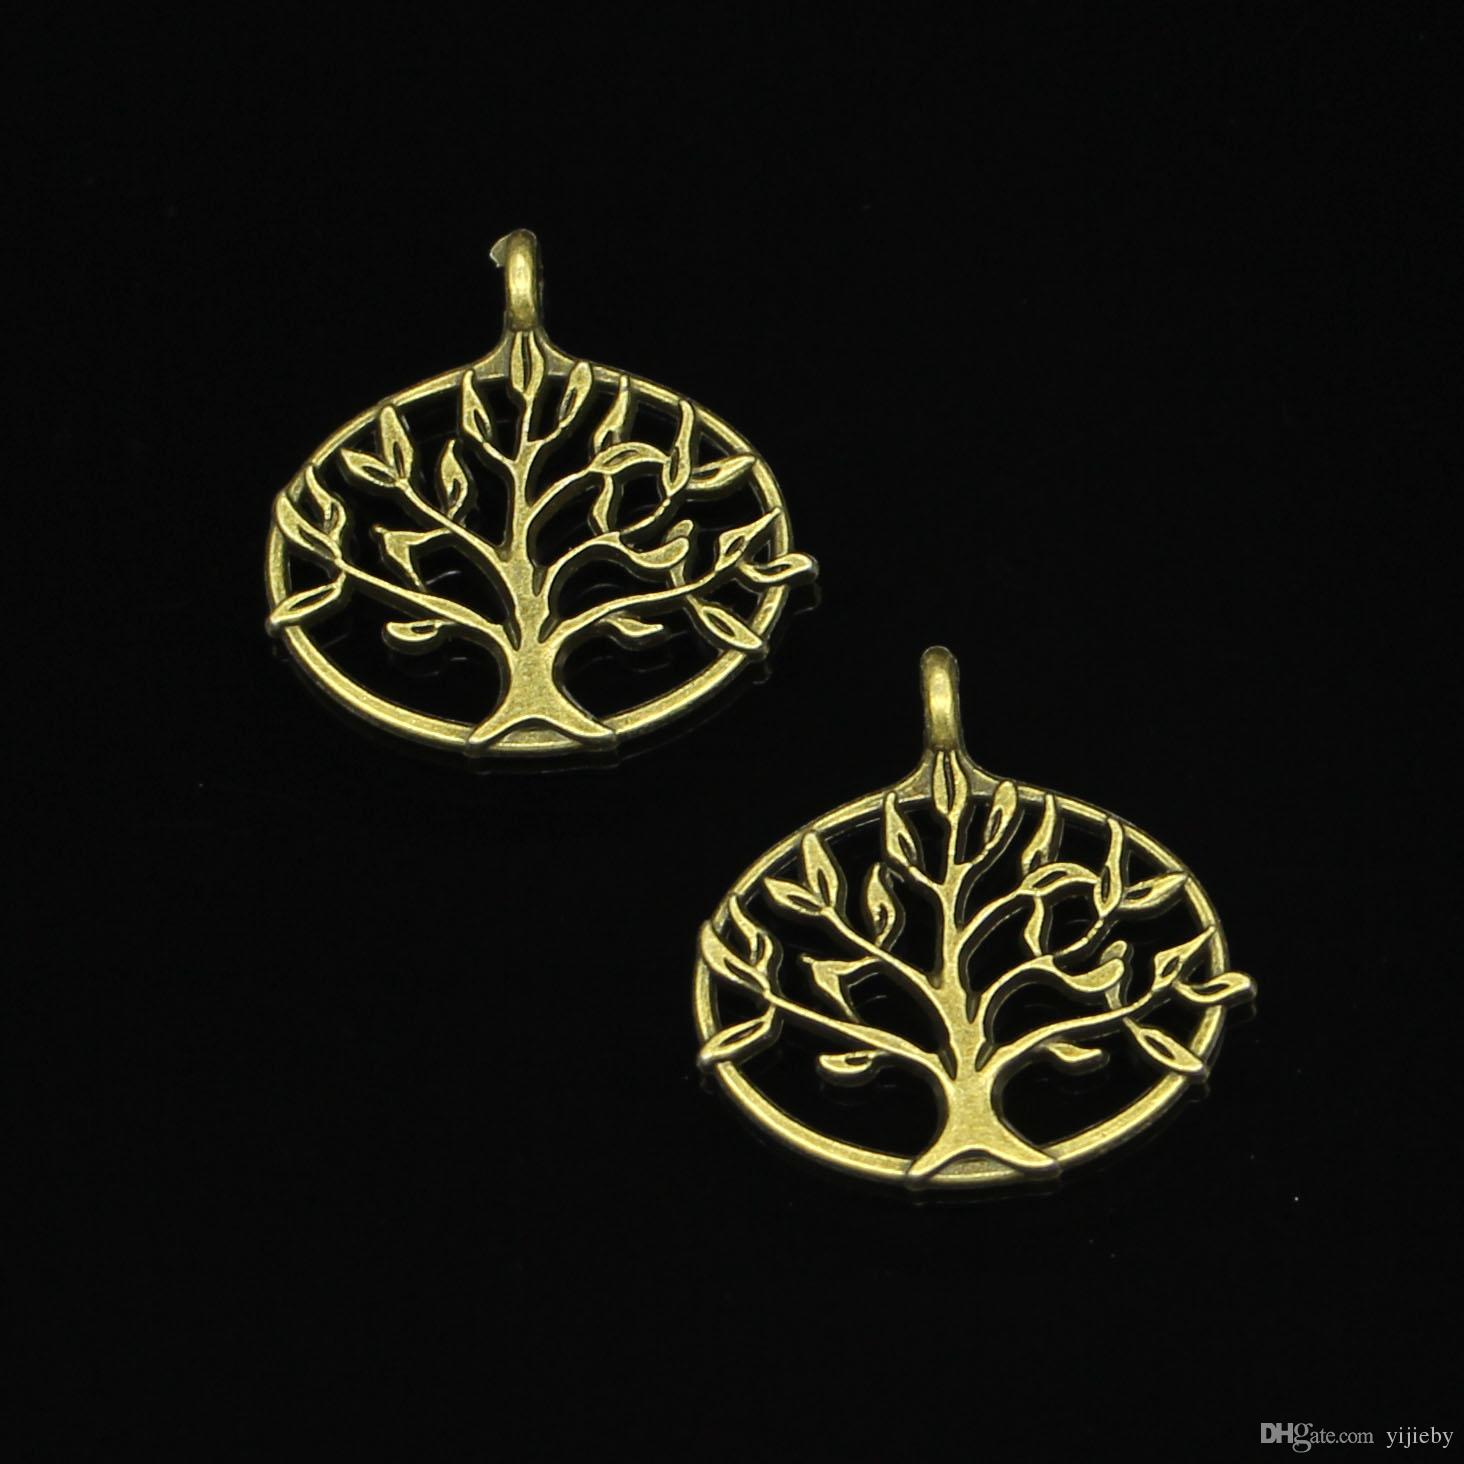 41pcs Antique Bronze Plated peace tree Charms Pendant fit Bracelet Necklace Jewelry DIY Making Accessories 27*27mm